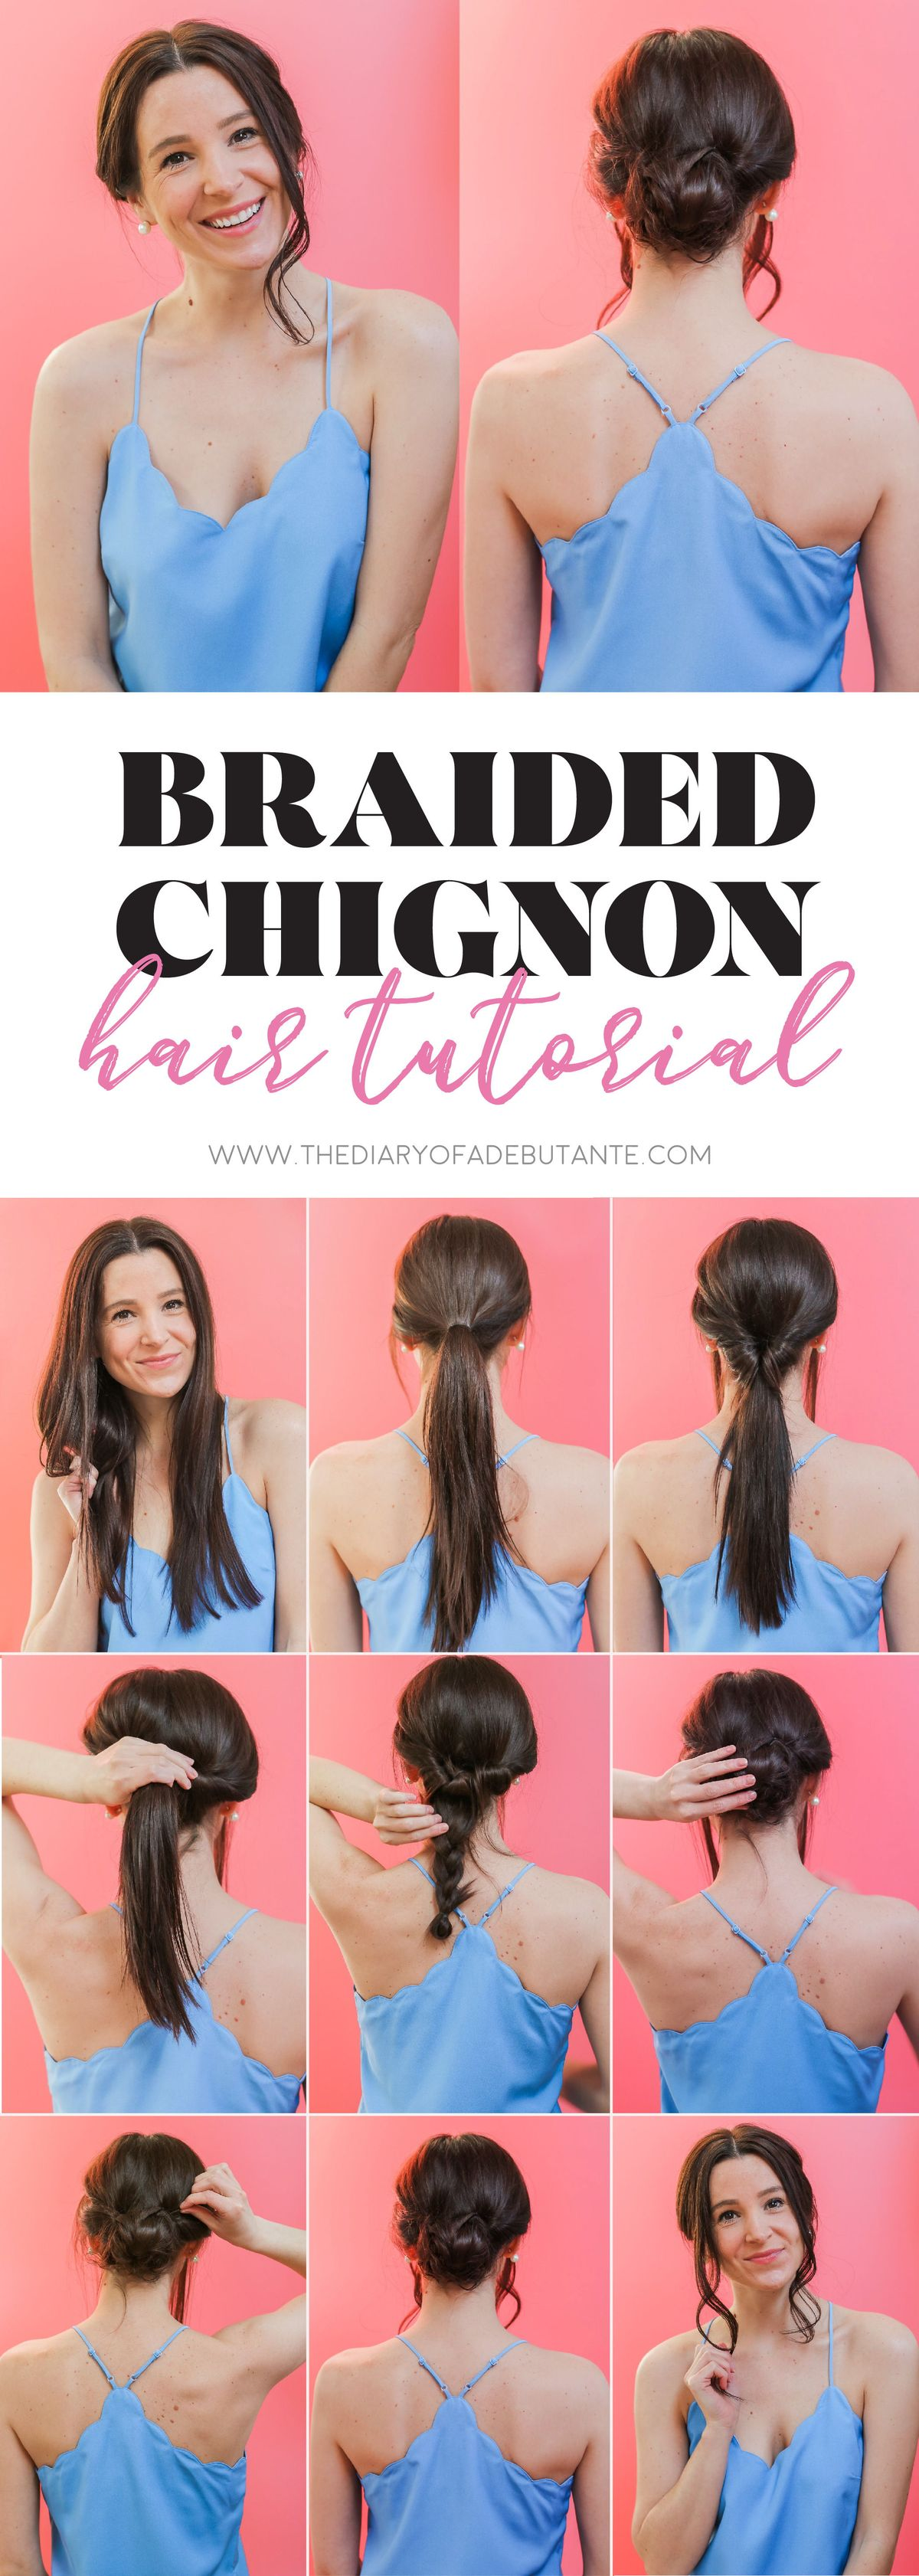 "Looking for simple updos for medium to long hair? This super easy braided chignon hairstyle is the perfect ""lazy girl"" hairdo for spring weddings and for work! Click through for the step-by-step hair tutorial, along with a handful of DIY at-home hair color tips and tricks with Schwarzkopf Color Ultime hair color, by Stephanie Ziajka from the popular beauty blog Diary of a Debutante! #ad #fashioncolorexpert #schwarzkopf #hairtutorial #simplebraidedhairstyles #longhair #easyupdo #chignon"